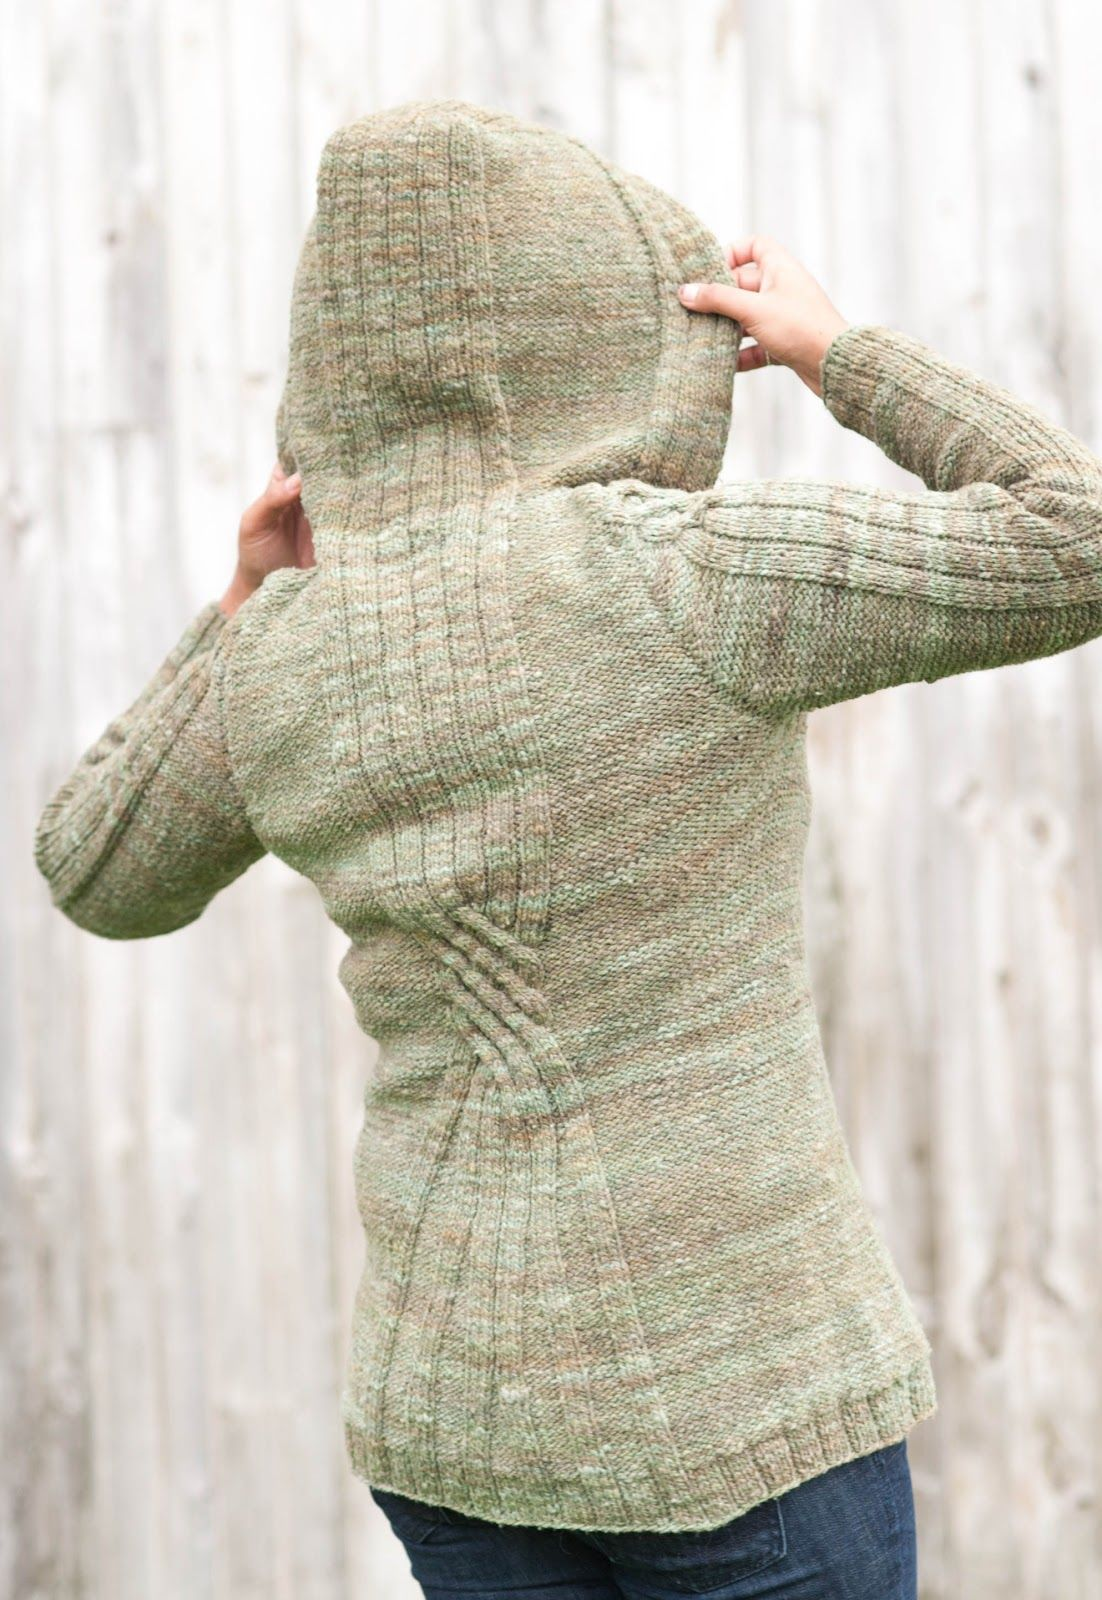 Kristen TenDyke's Blog: New from Caterpillar Knits - Nadi Coat!